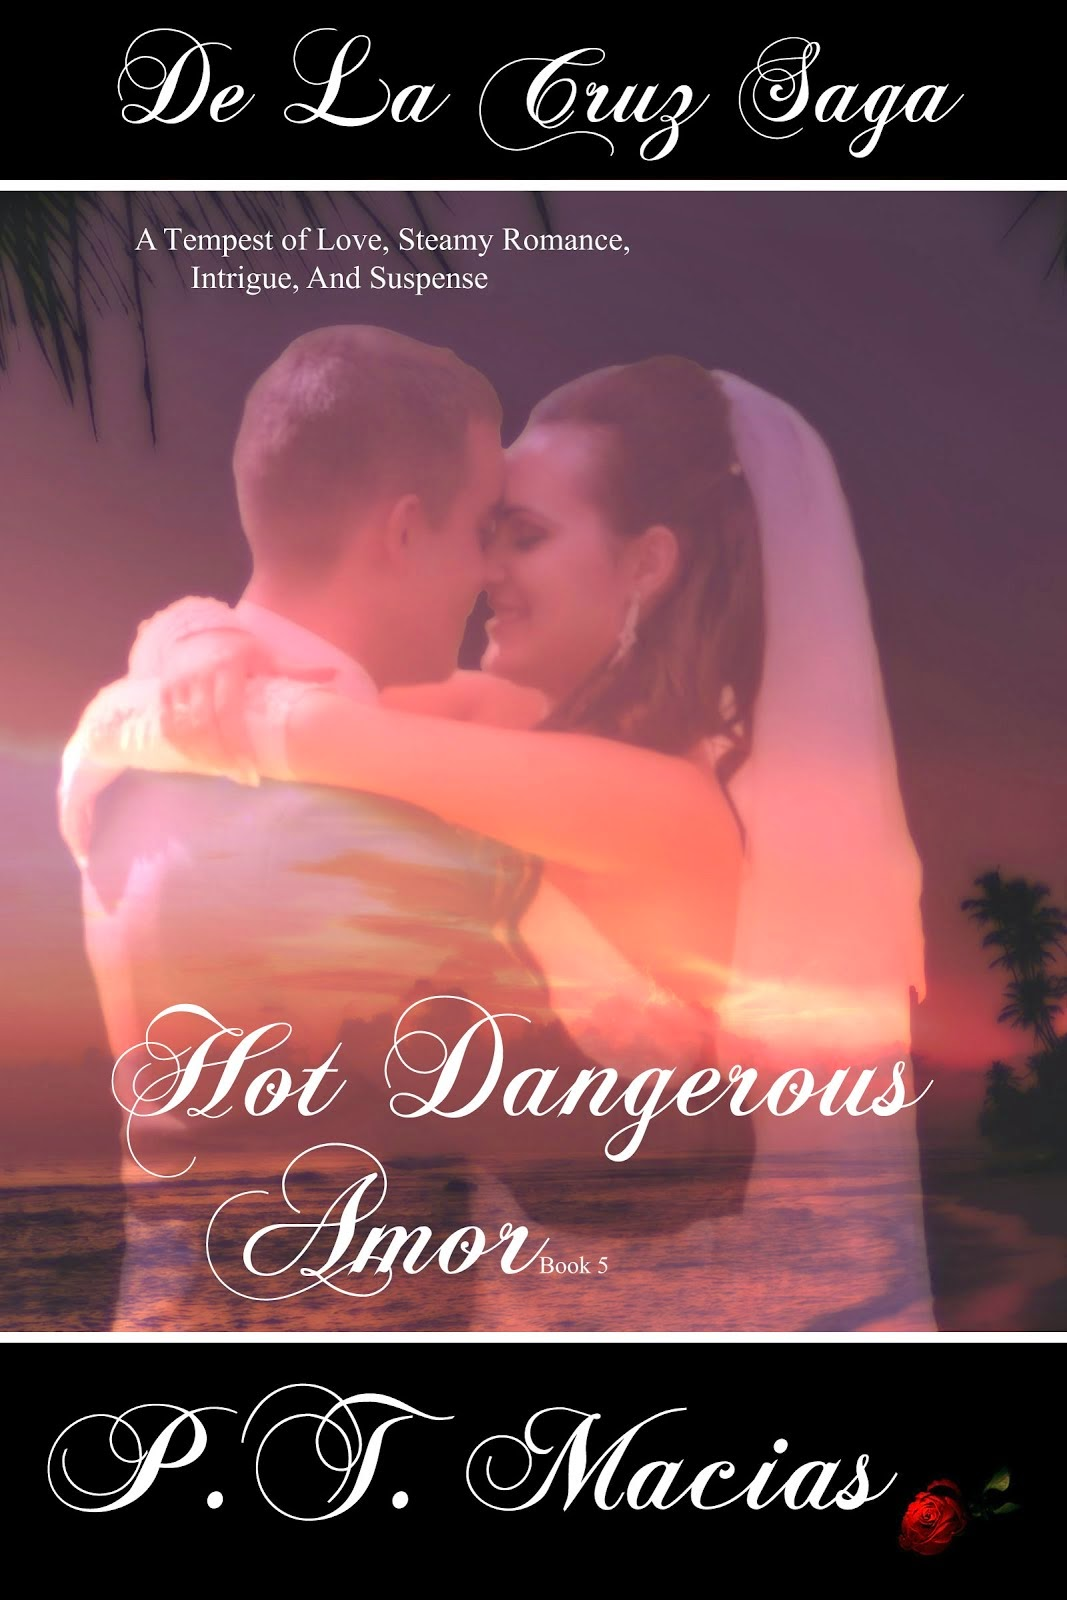 Hot Dangerous Amor, De La Cruz Saga Book  5